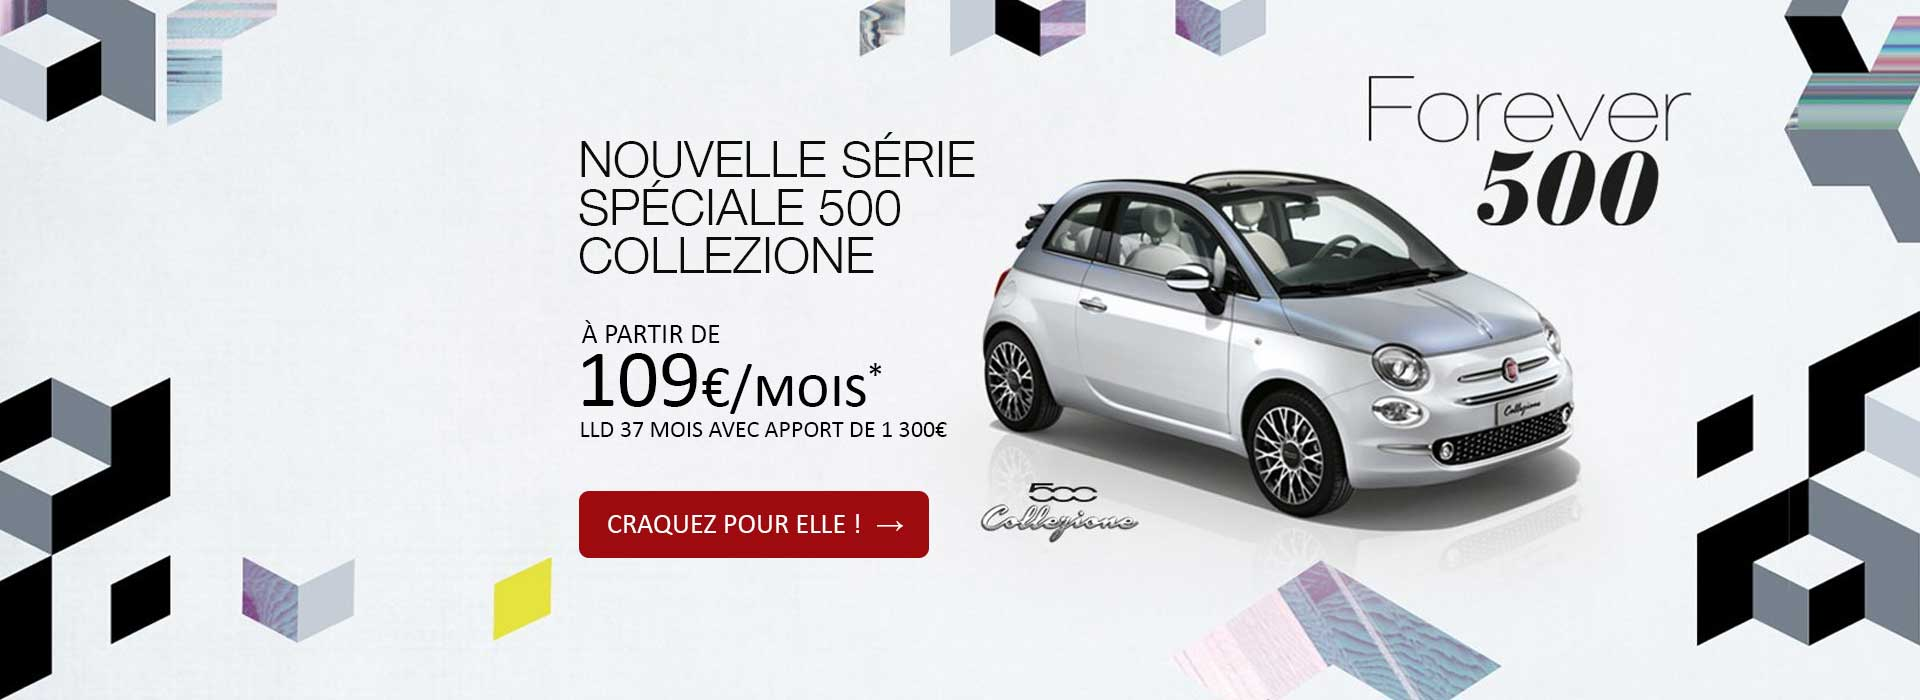 fiat dijon vente voiture neuve vehicule occasion. Black Bedroom Furniture Sets. Home Design Ideas